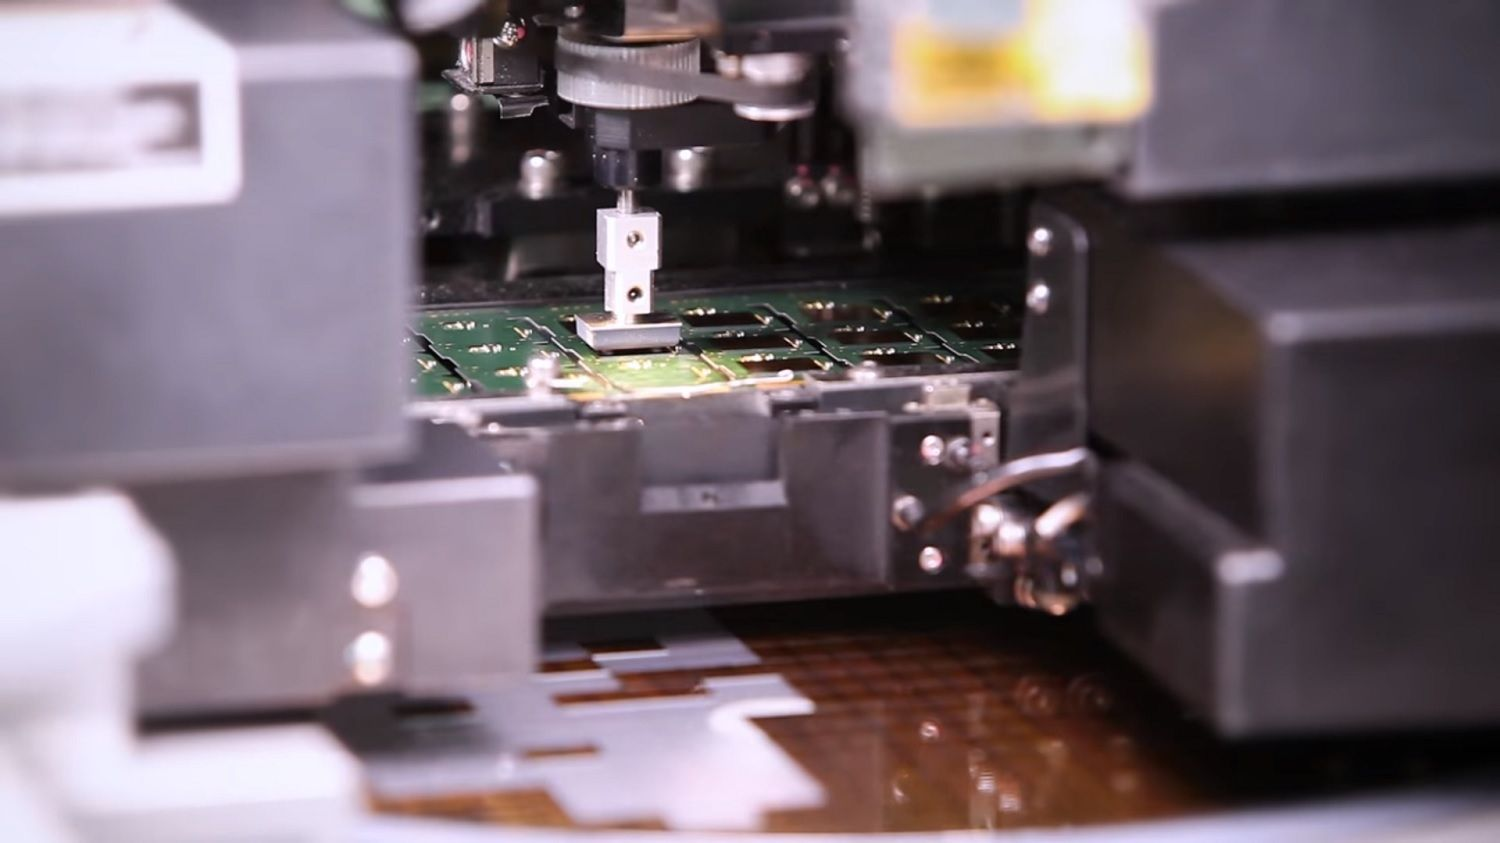 A machine picks a chip from the feeder and places it on to the PCB